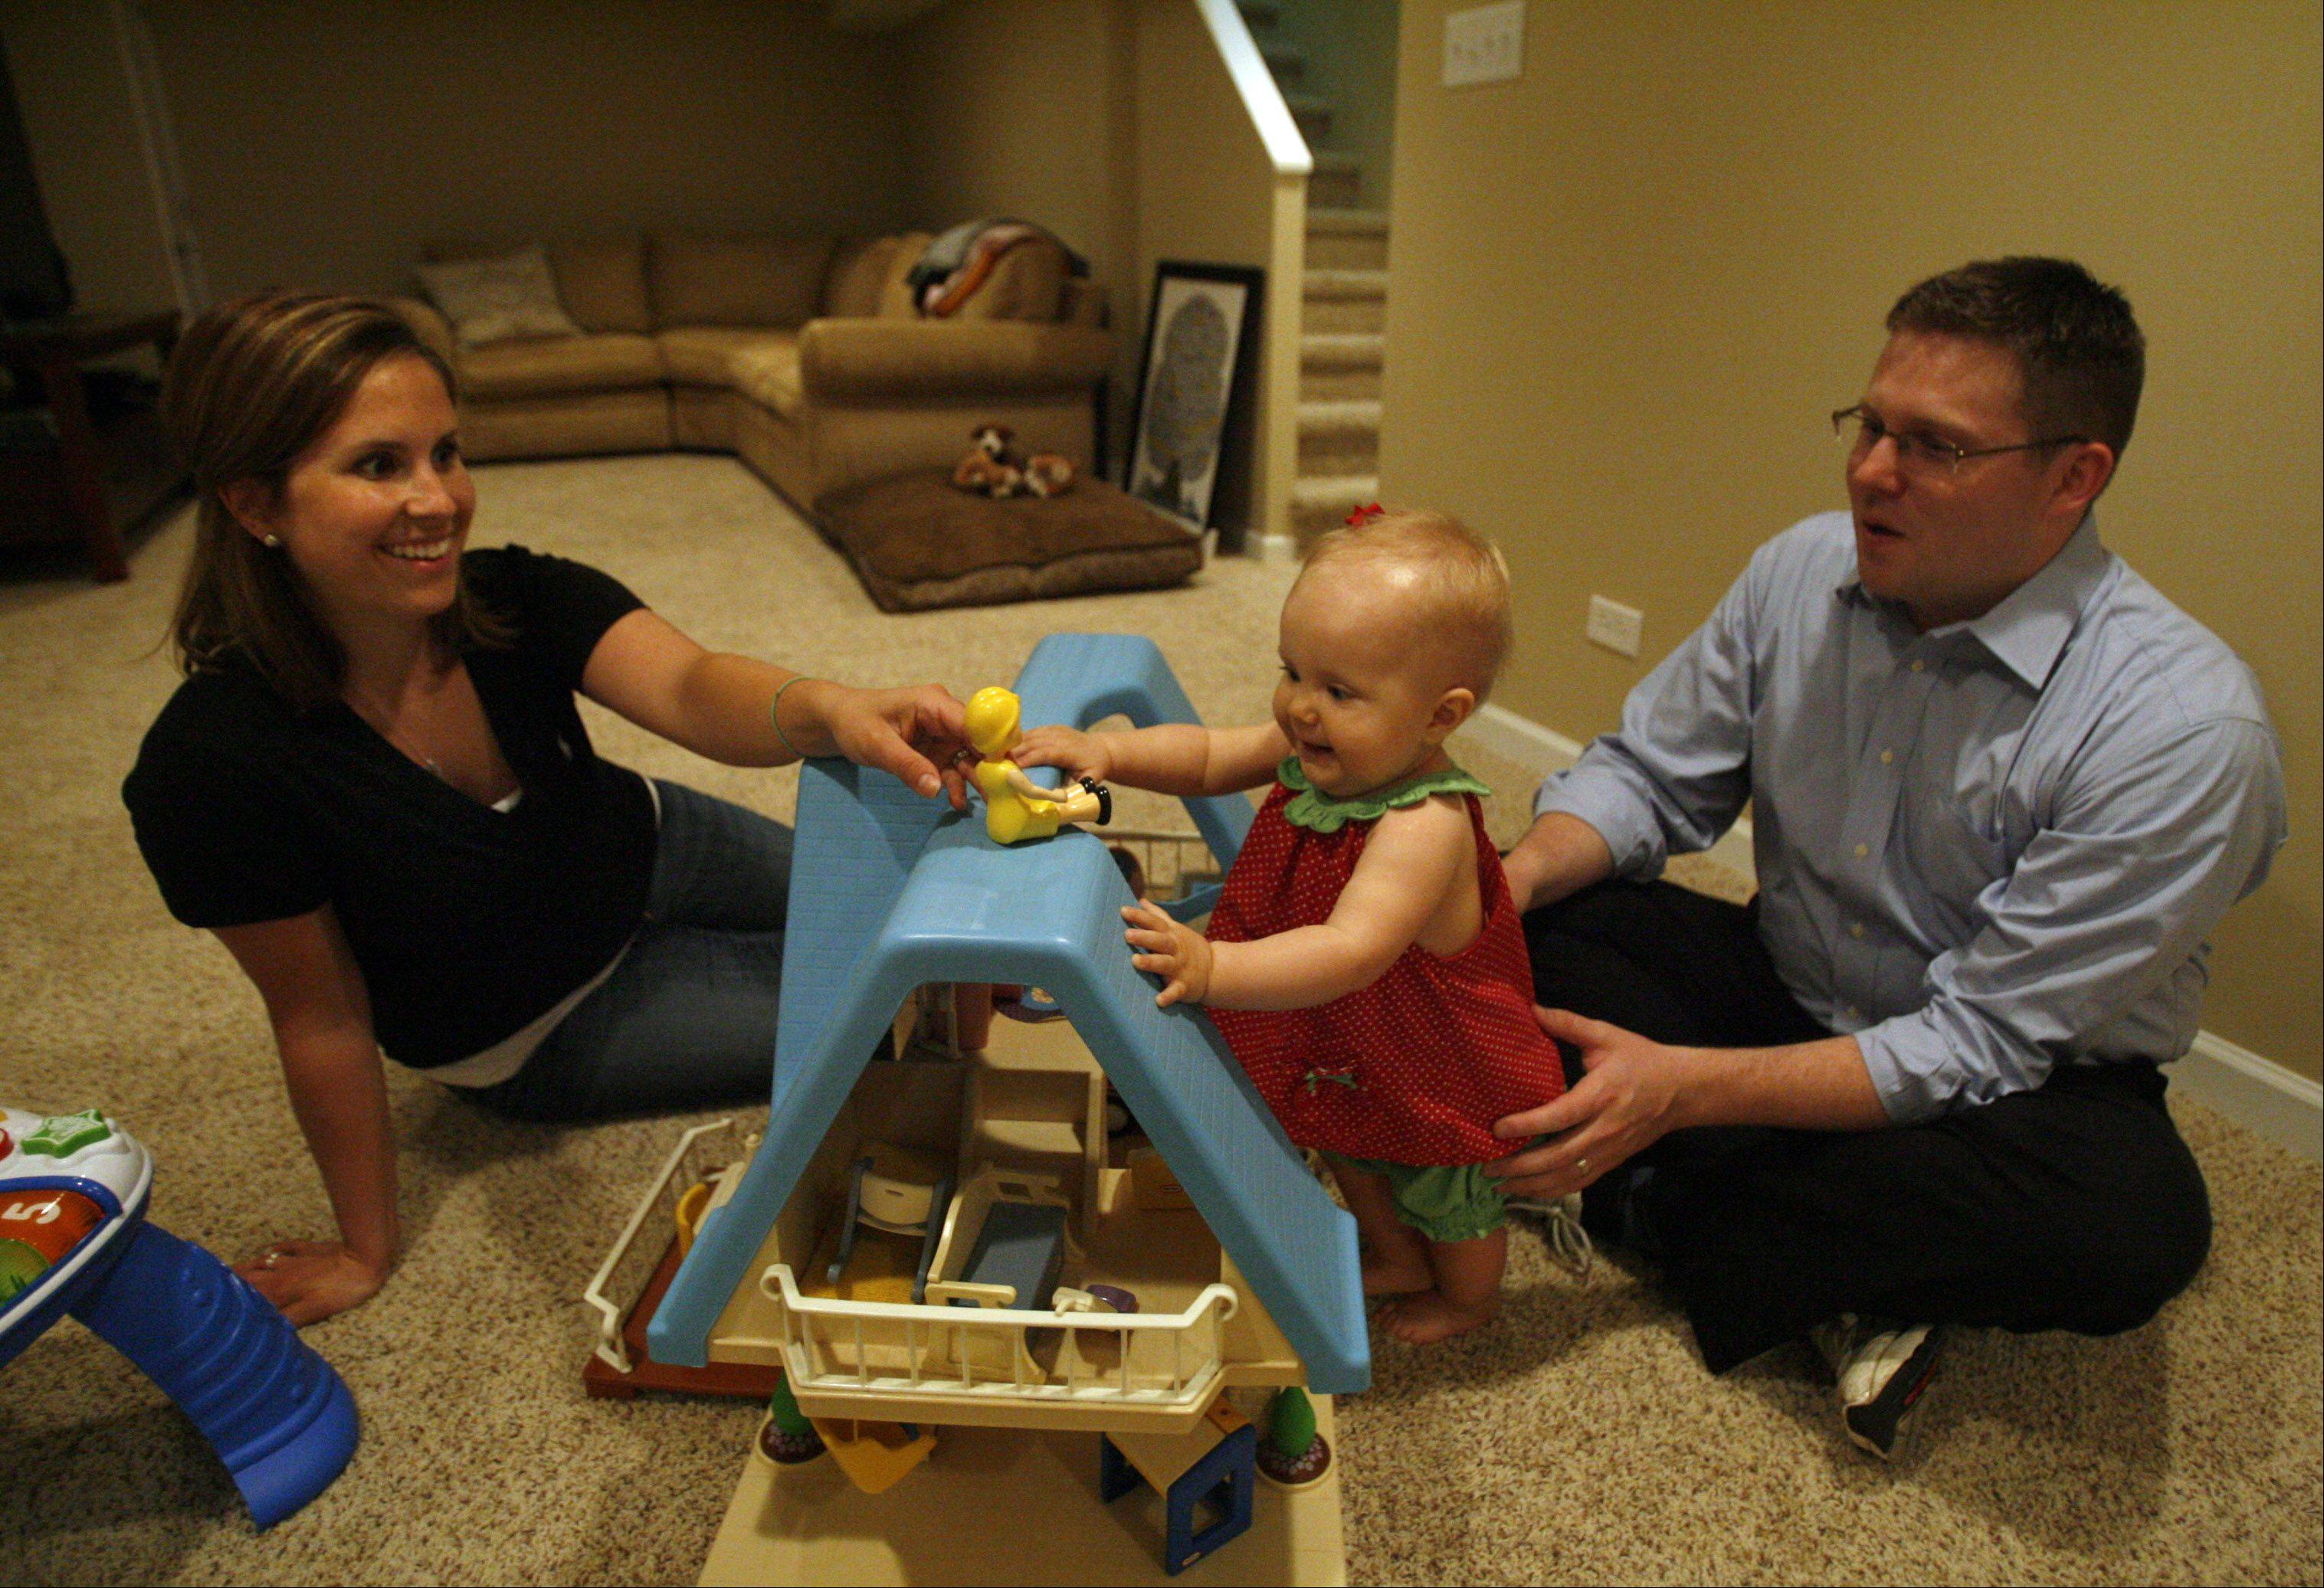 Contest winners Matt and Anne Edwards, with 10-month-old daughter Katherine, won a grand prize of a $25,000 basement makeover from Matrix Basement Finishing System.